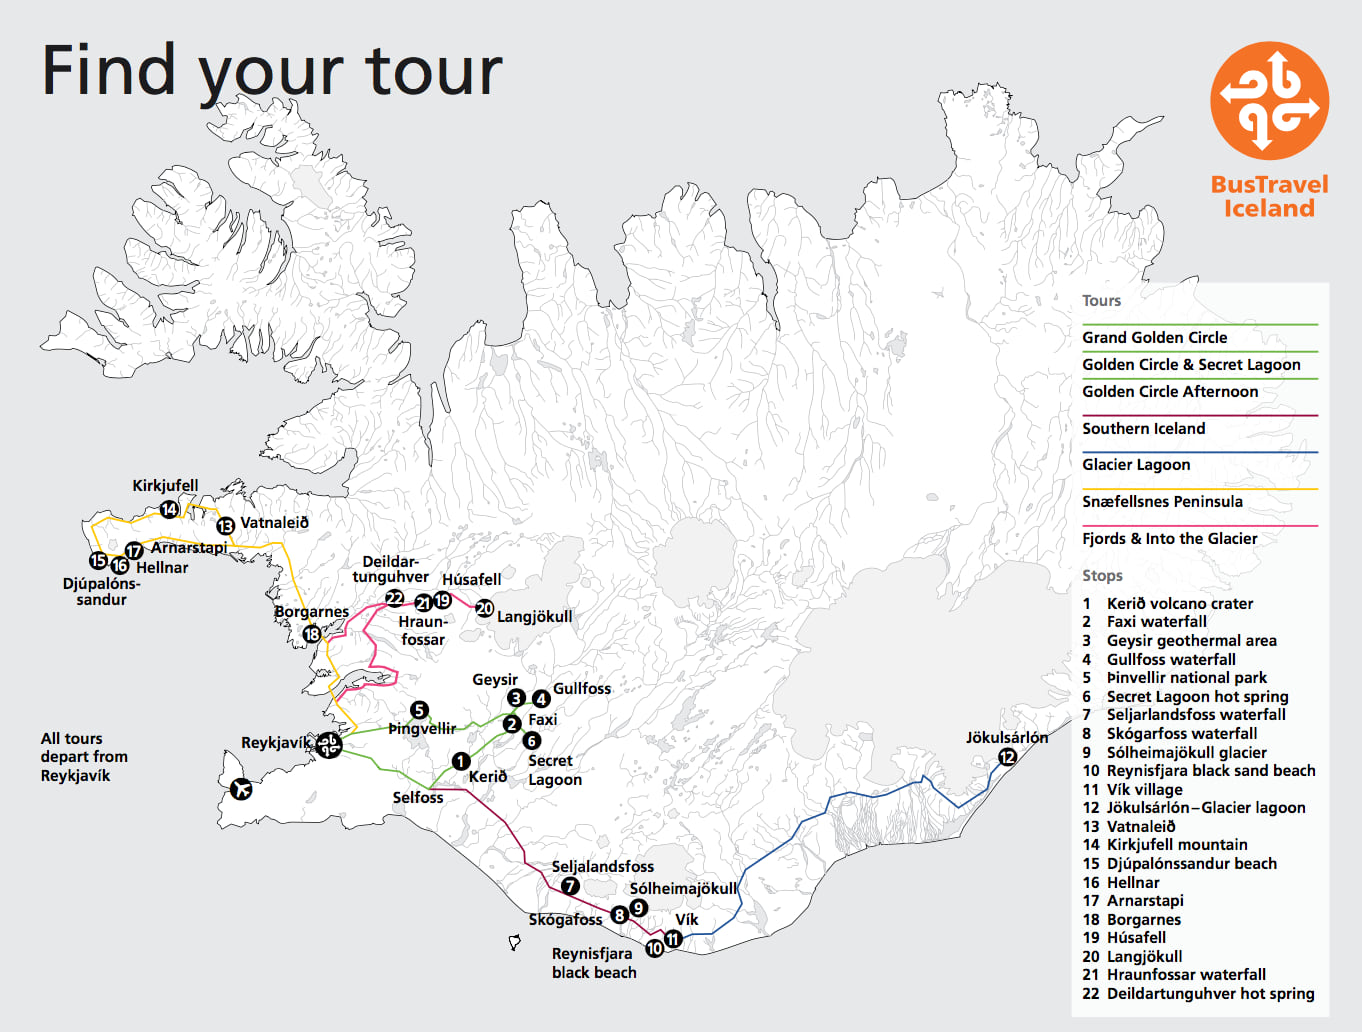 Guided Iceland Day Tours | One-Day Minibus Tour | BusTravel Iceland on australia attractions map, iceland attractions and monuments, iceland shopping, iceland points of interest maps, venezuela attractions map, iceland information, st. kitts attractions map, world attractions map, dominica attractions map, reykjavik tourist map, italy attractions map, jordan attractions map, myanmar attractions map, egypt attractions map, myrtle beach south carolina attractions map, switzerland attractions map, belgium attractions map, mongolia attractions map, iceland tourist attractions, azerbaijan attractions map,